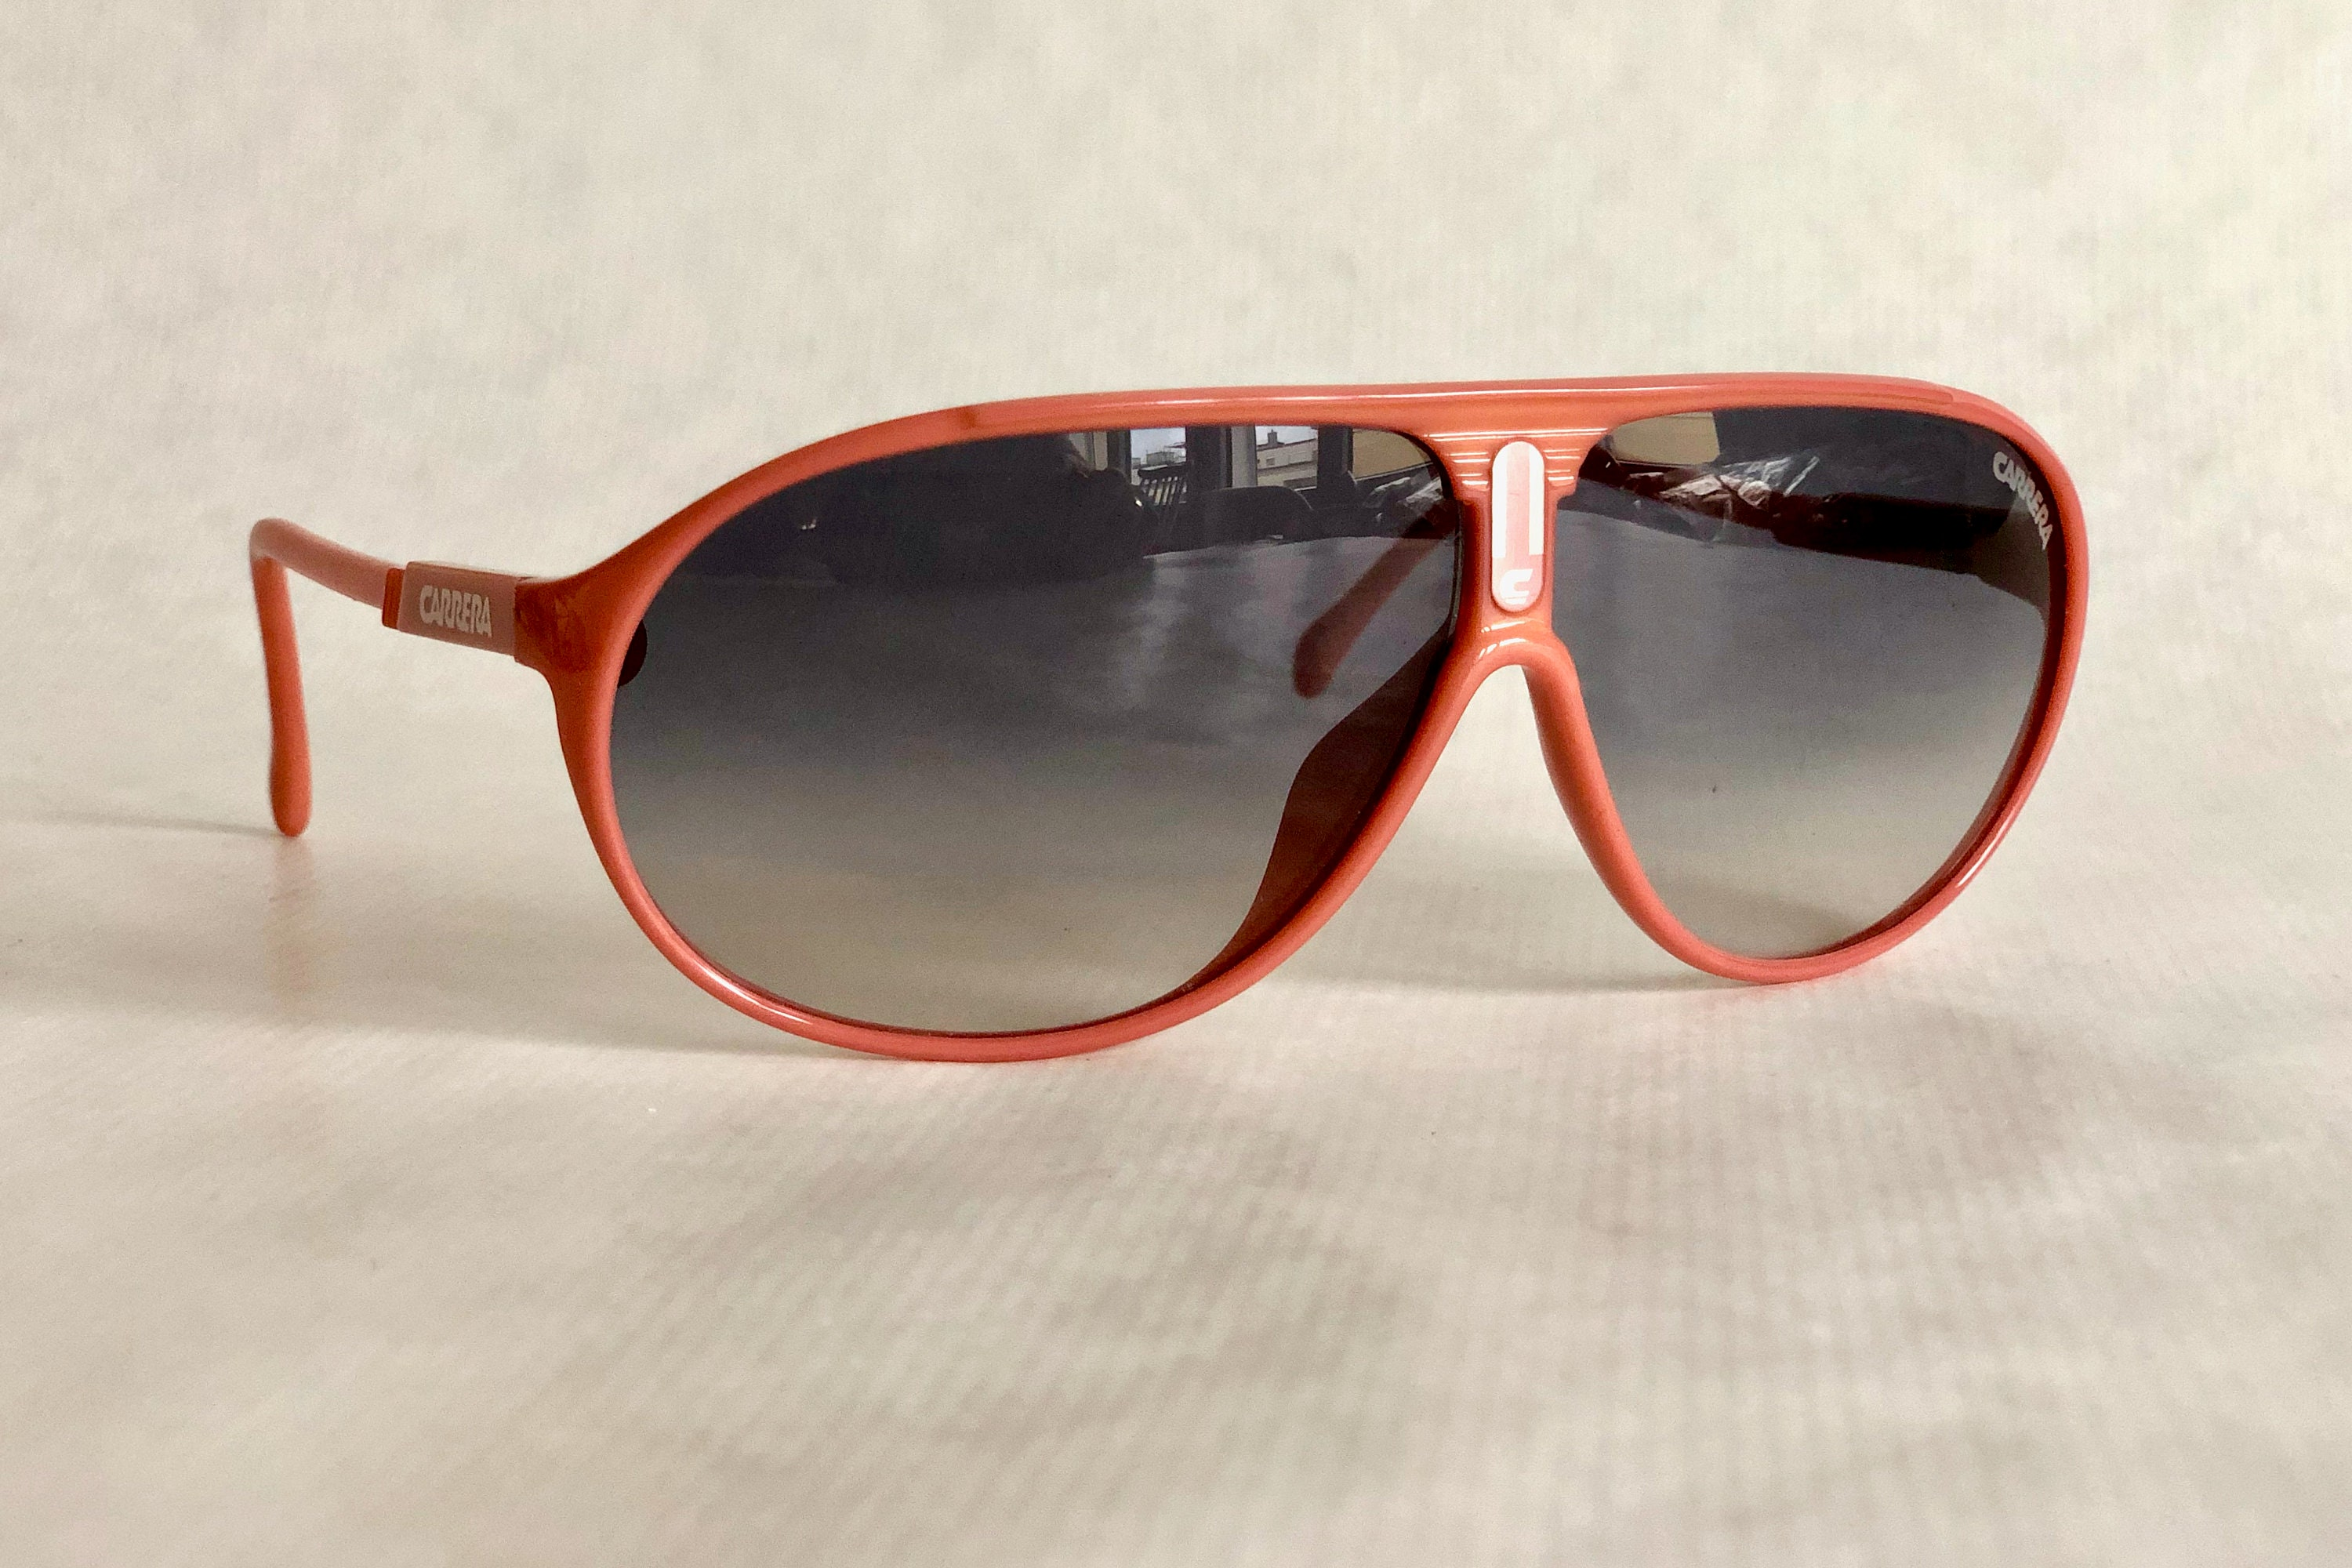 bc1752182dd3 Carrera 5412 30 Vintage Sunglasses – New Old Stock – Made in Austria.  gallery photo ...